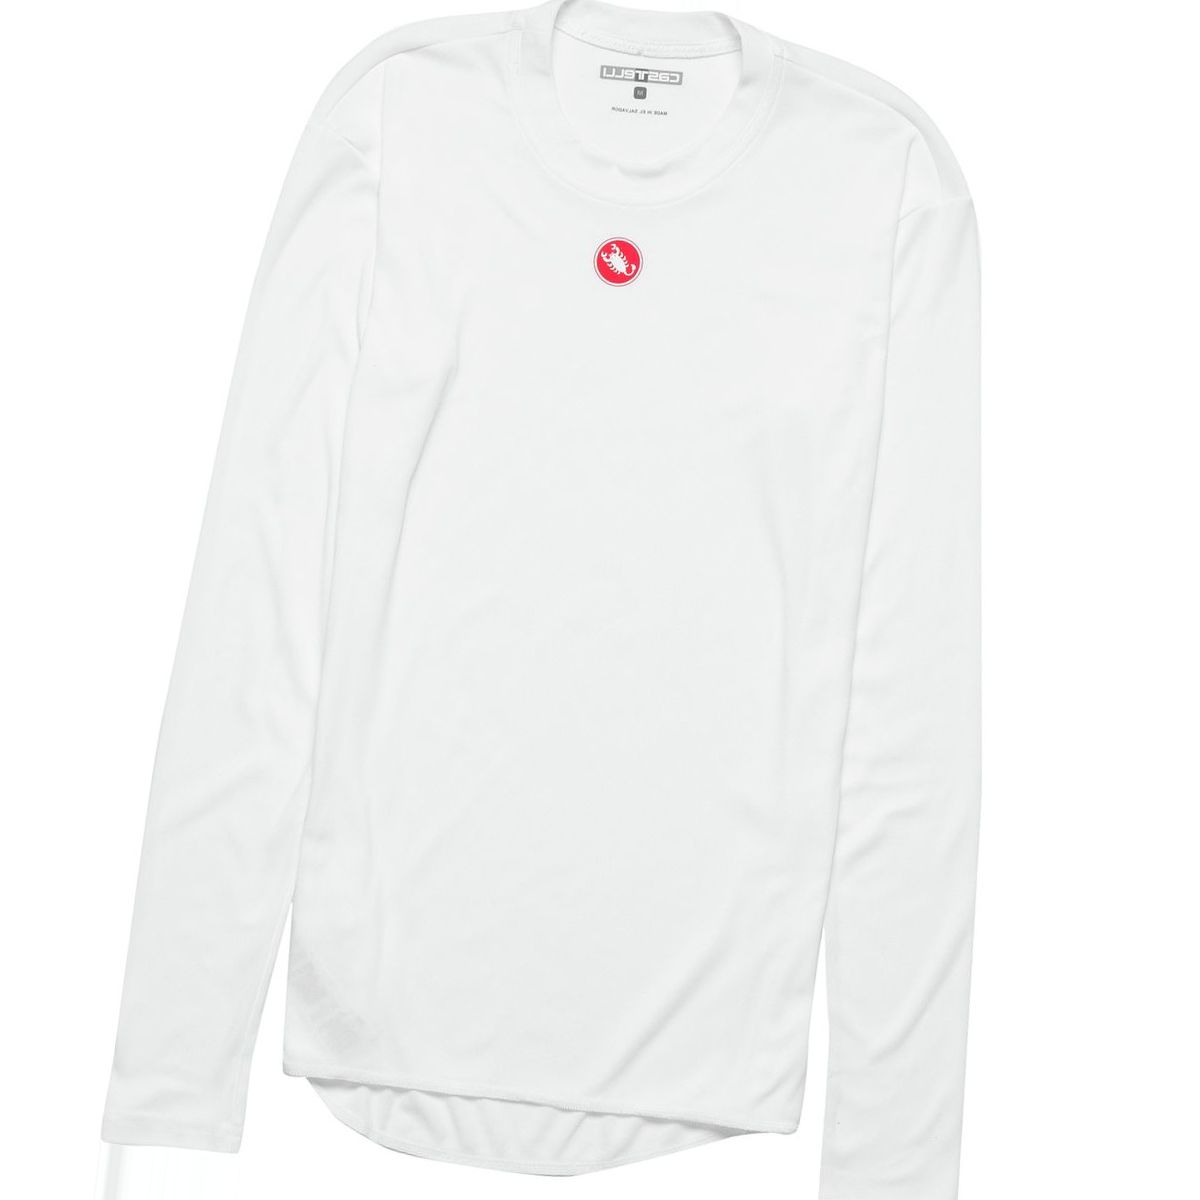 Castelli Prosecco Limited Edition R Long-Sleeve Top - Men's